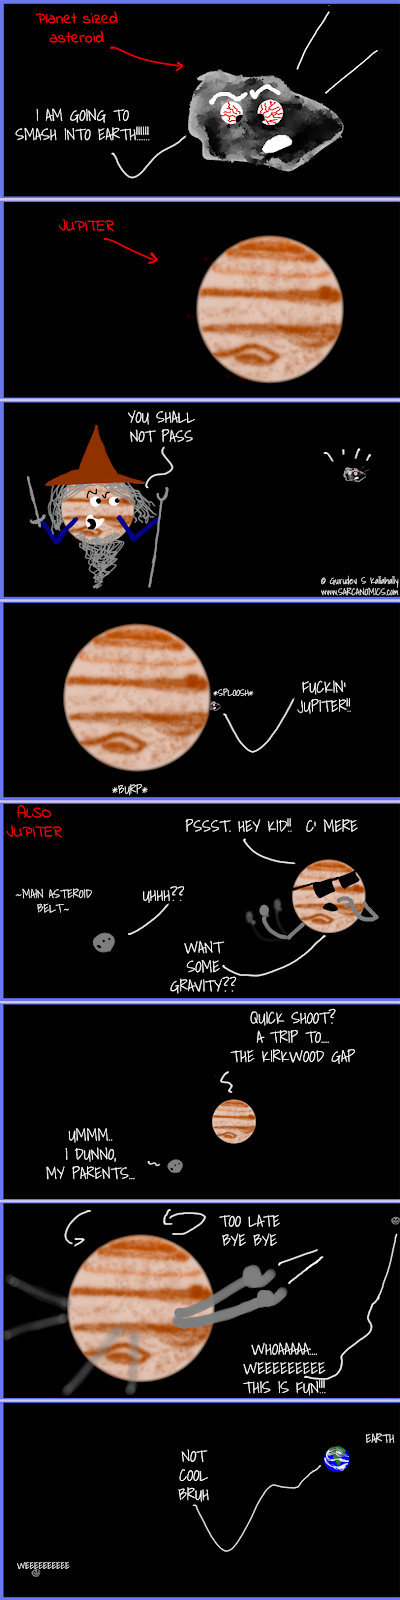 Jupiter and The Kirkwood gap